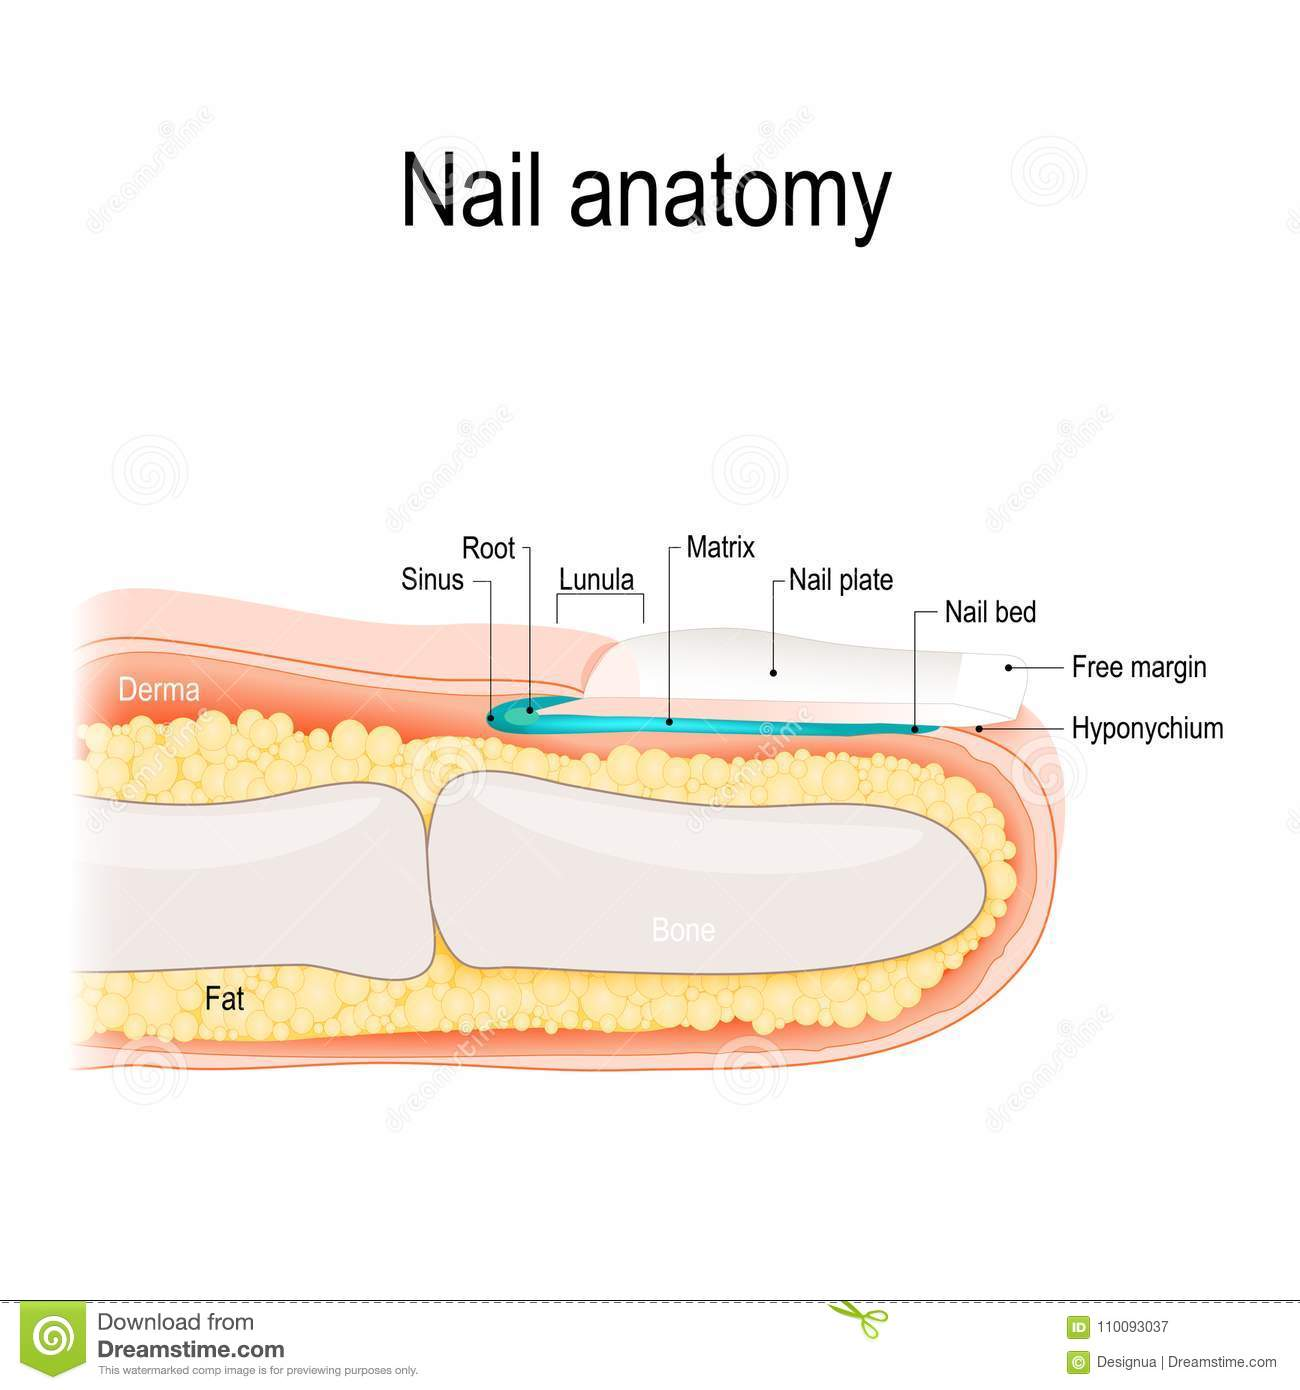 Nail anatomy detailed vector illustration stock vector nail anatomy detailed vector illustration ccuart Images